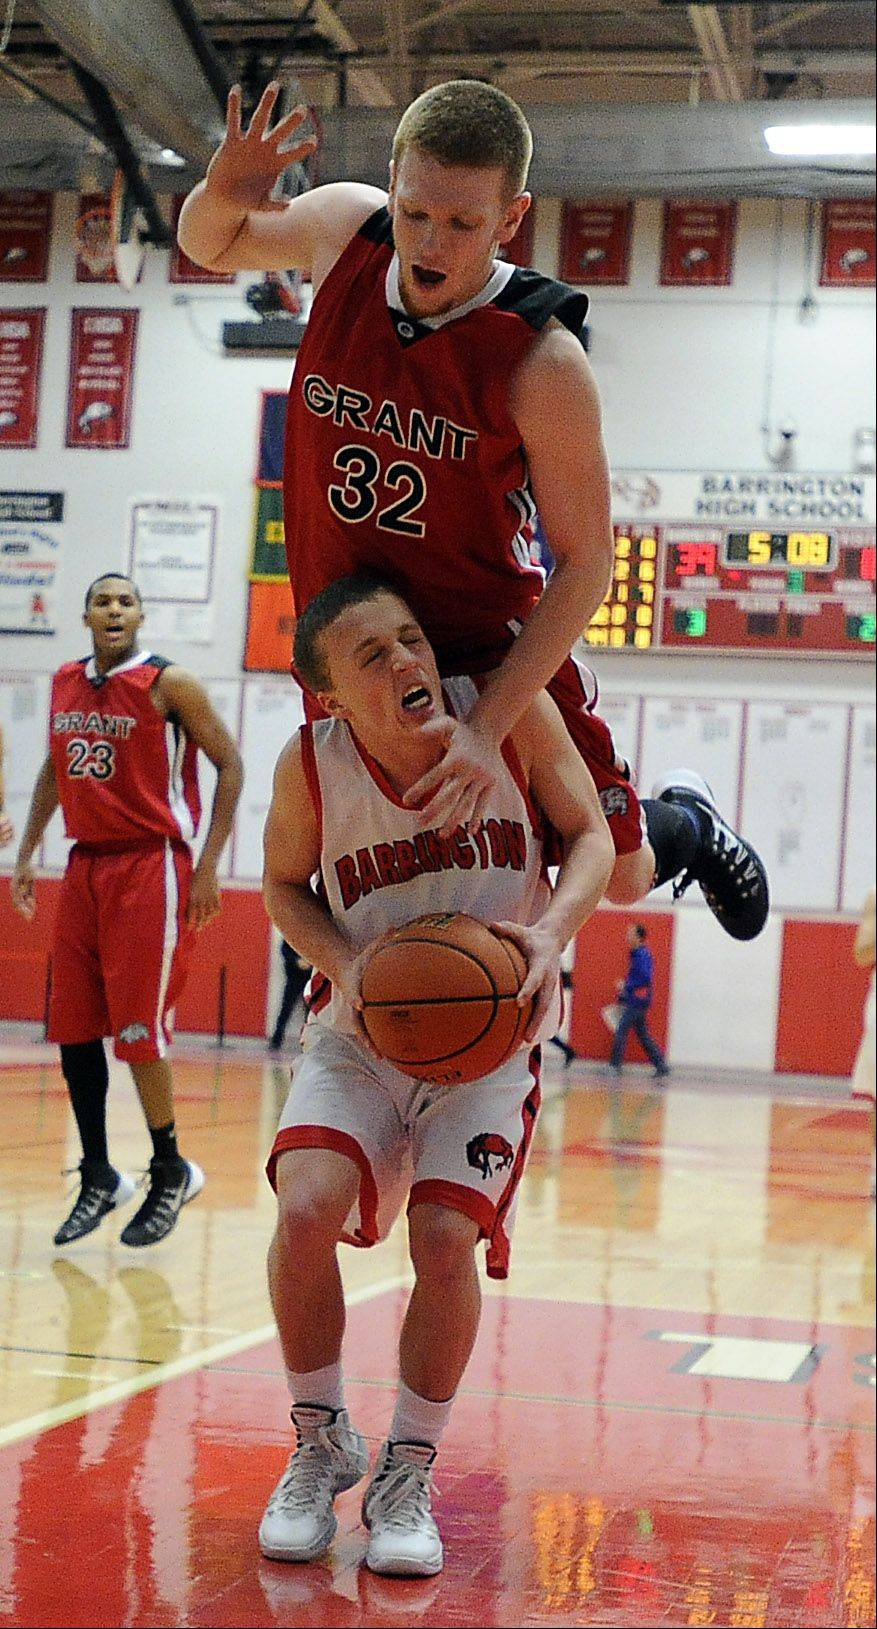 Grant's Devin Bald goes up and over Barrington's Jake Orr.